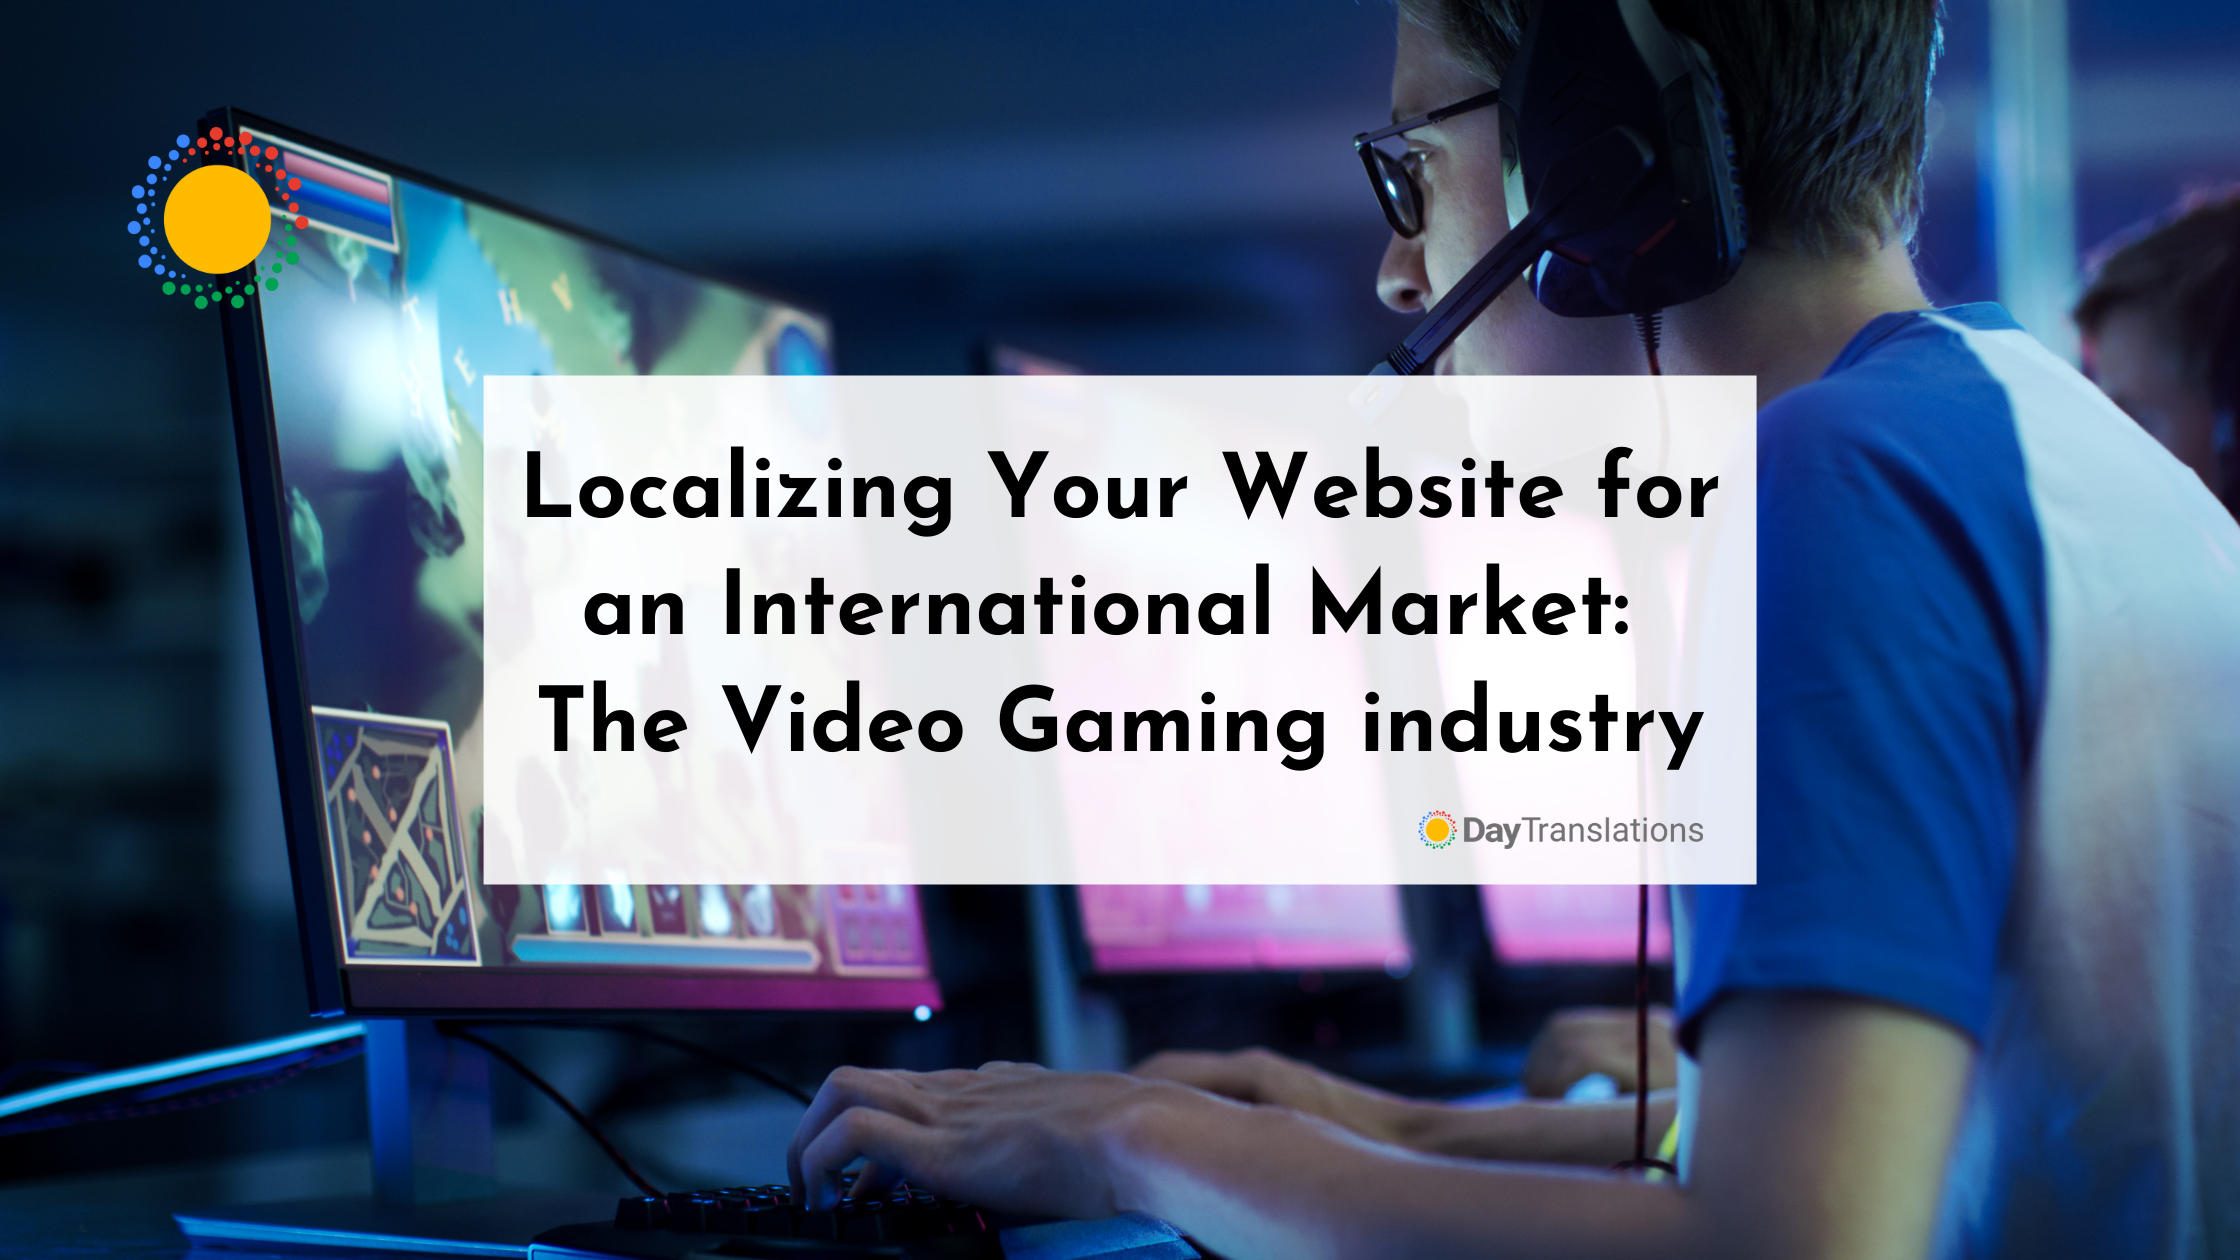 Localizing Your Website for an International Market – The Video Gaming industry